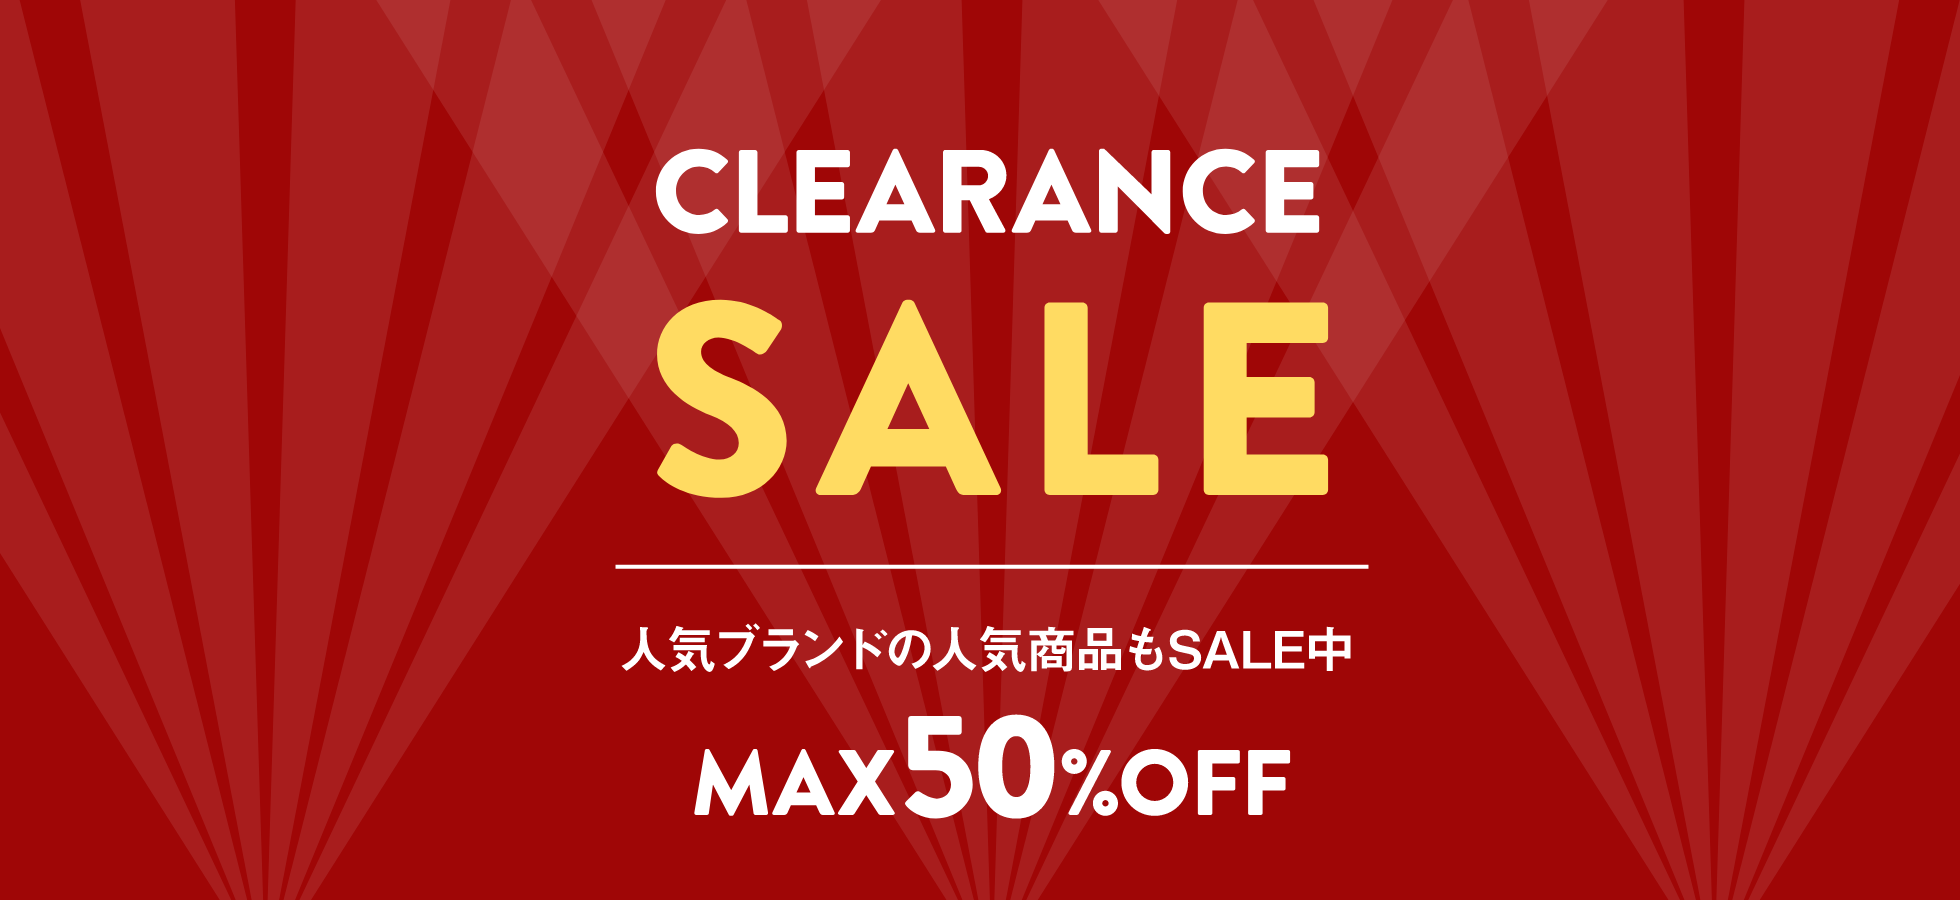 CLEARANCE SALE MAX50%OFF